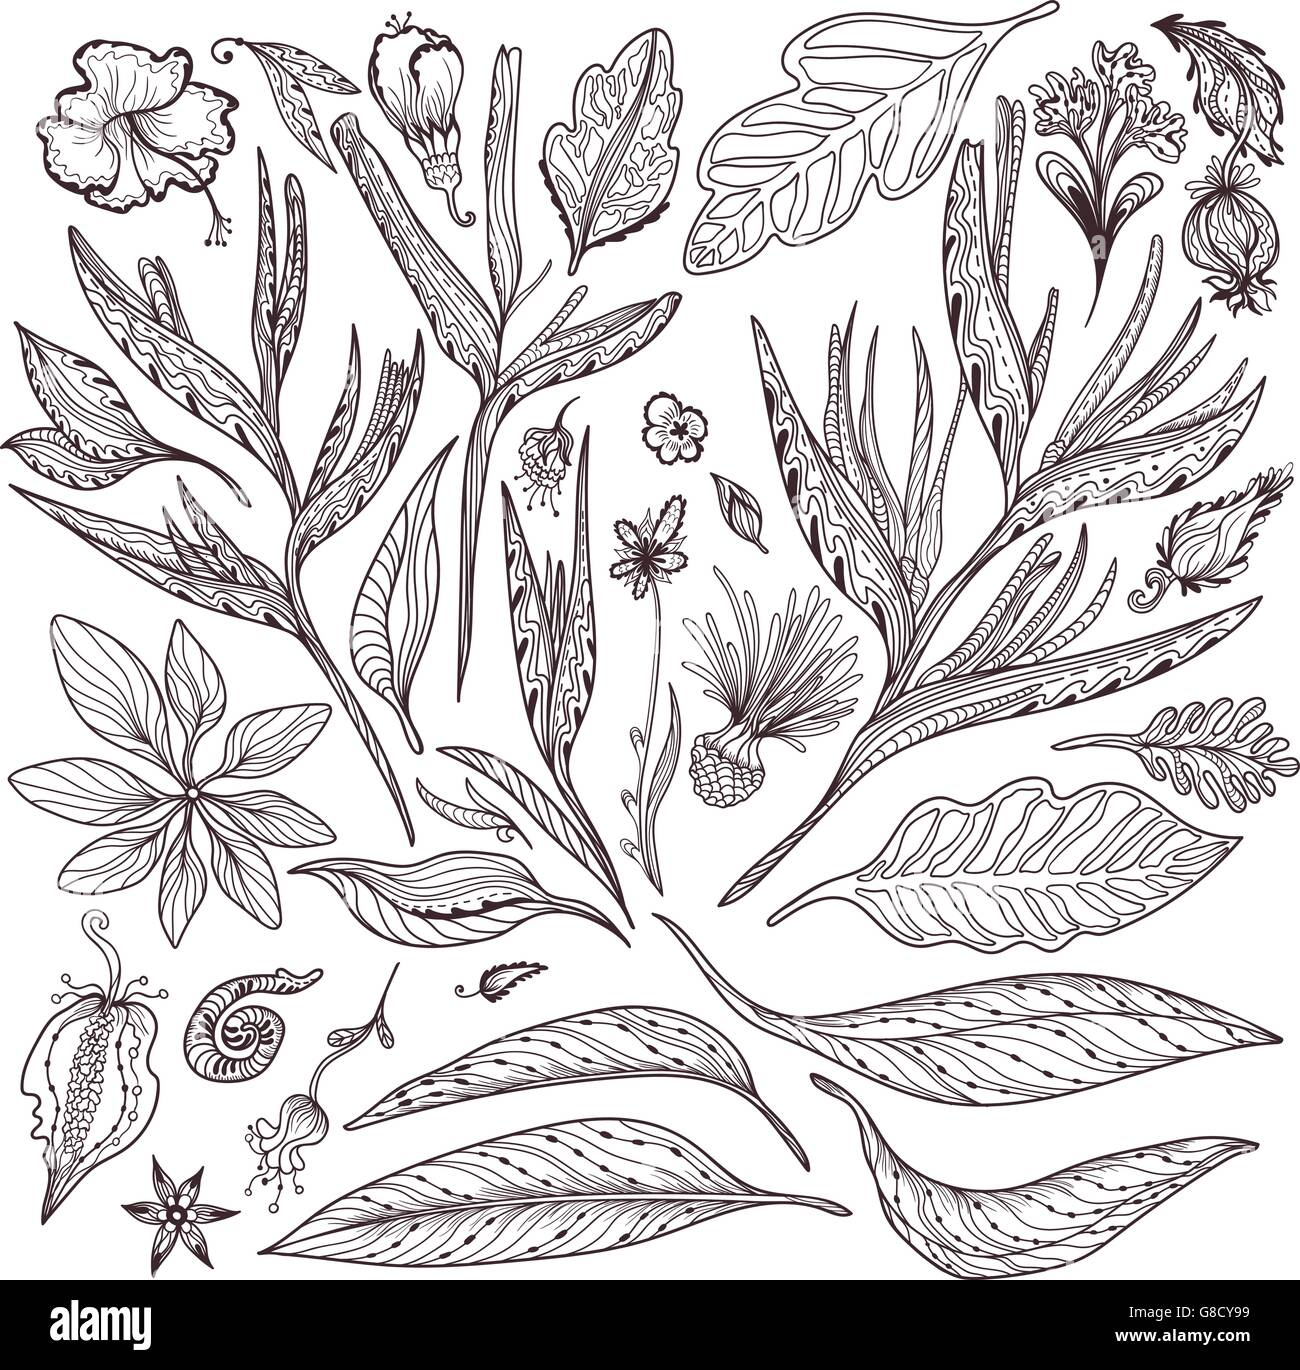 Collection of indian thai leaves and flowers in sketch outline doodle style on white background